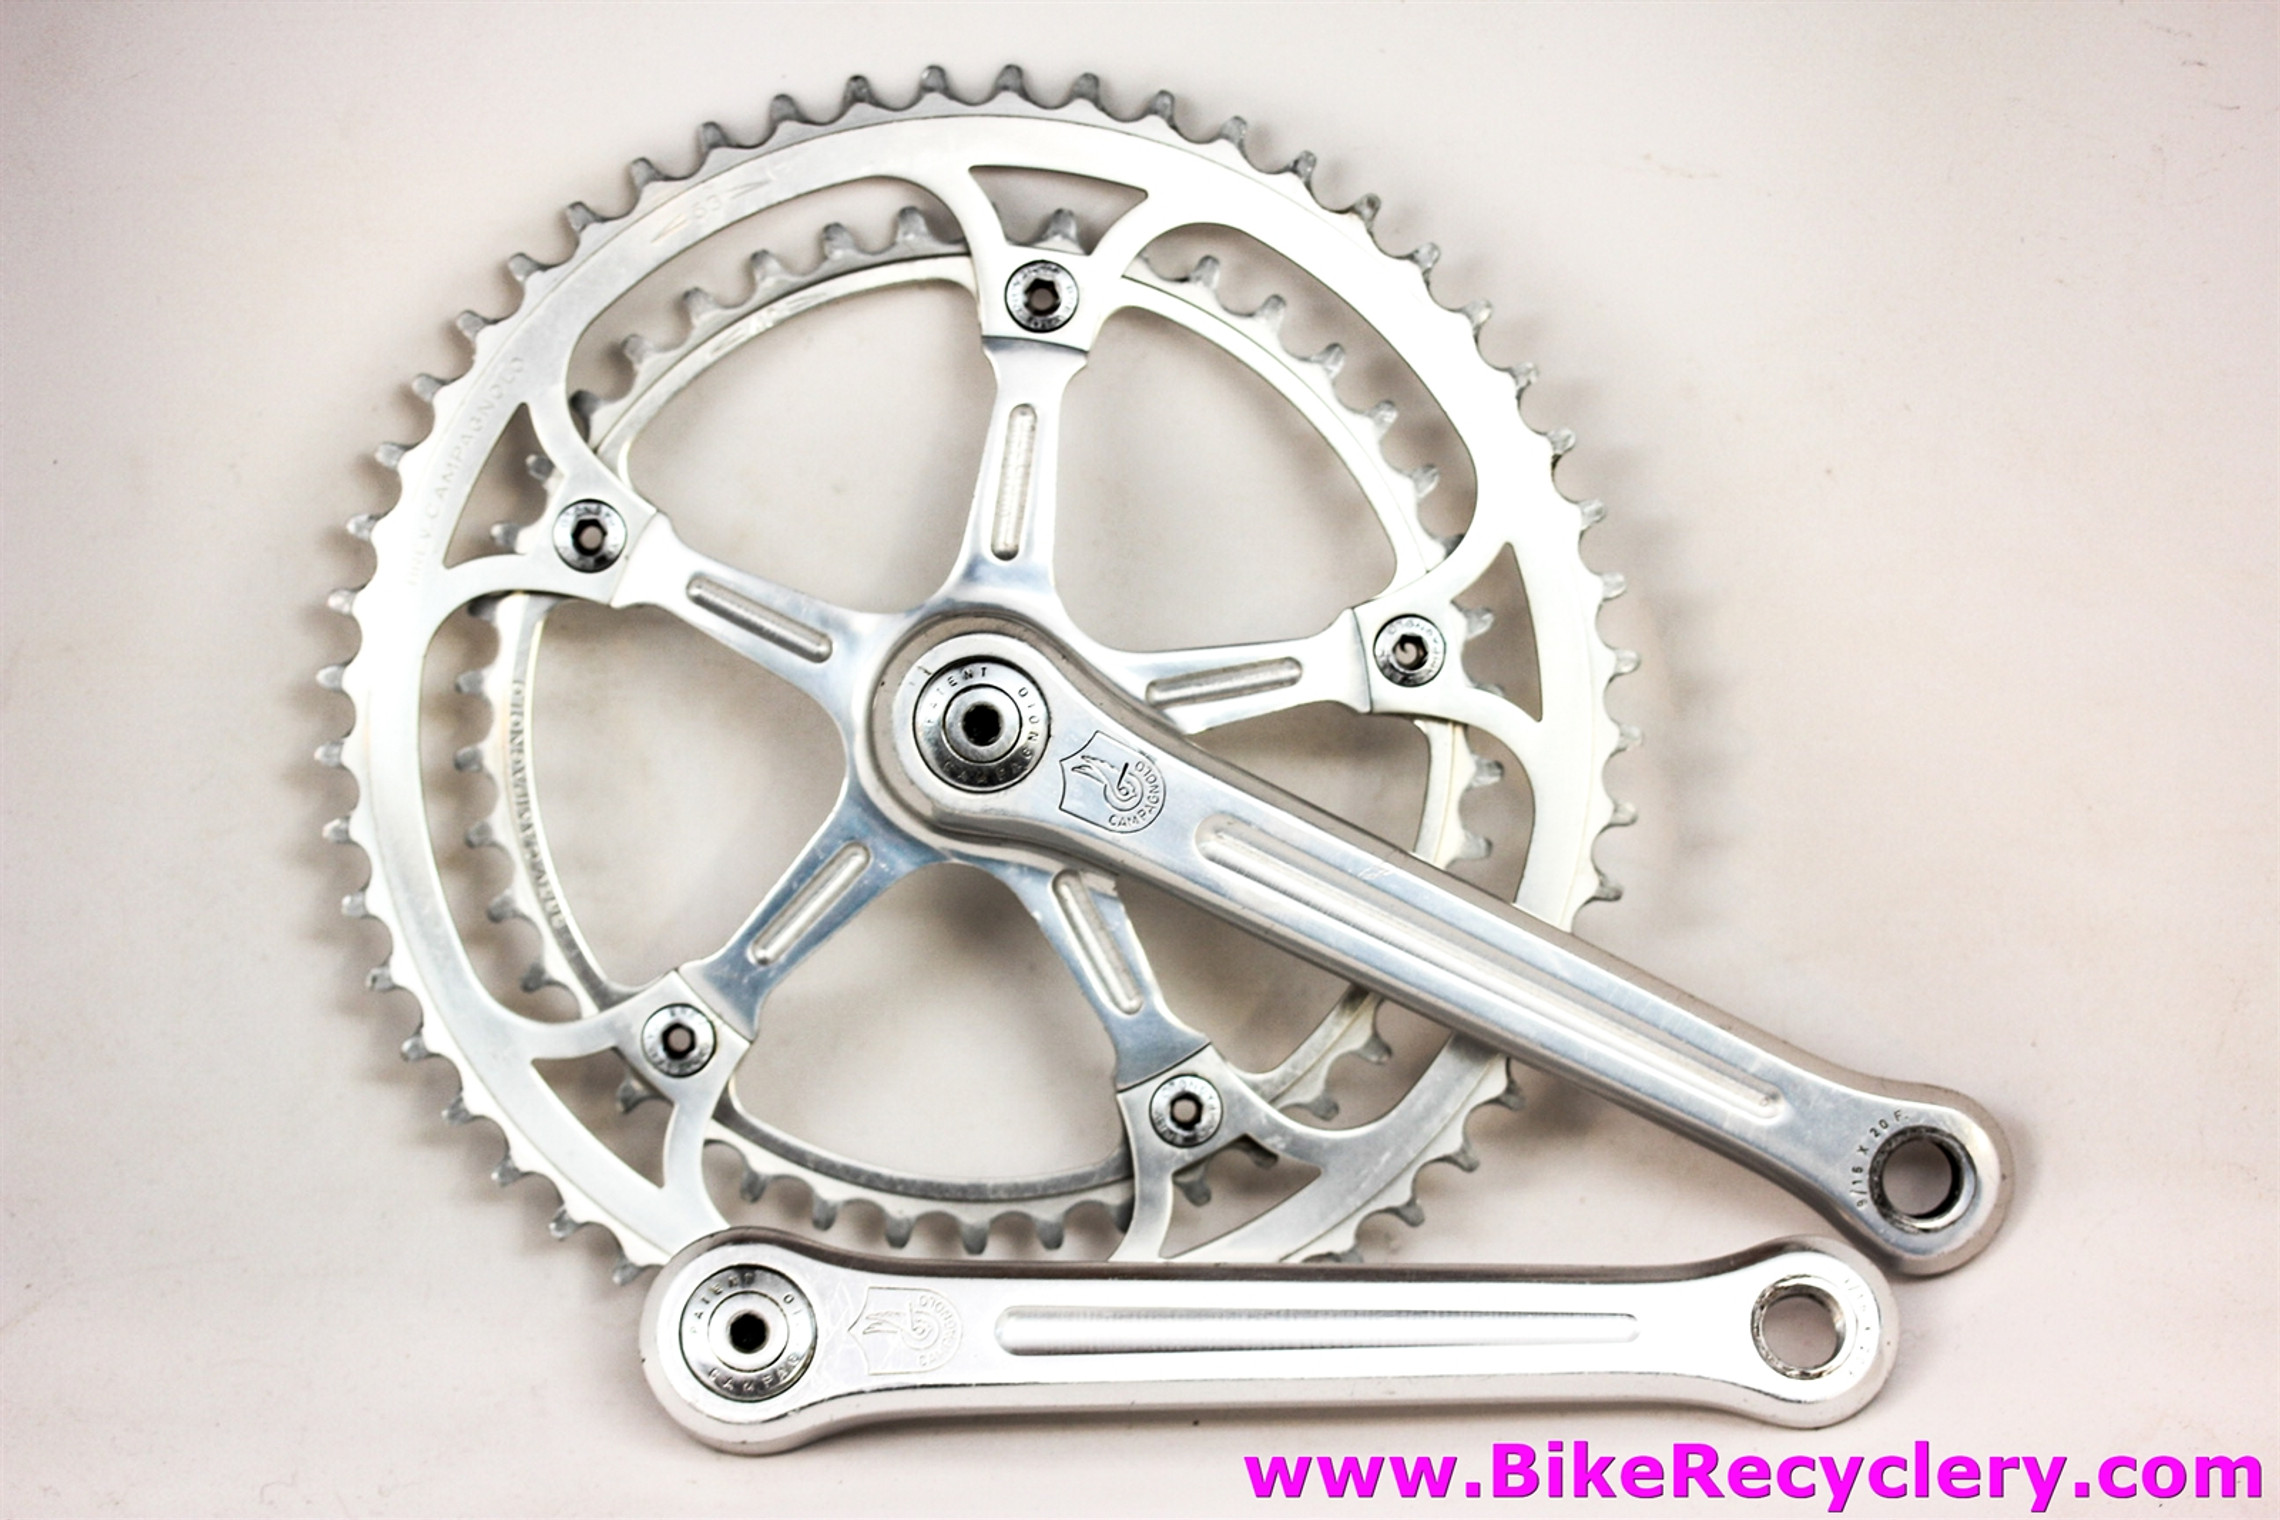 Campagnolo Nuovo Record Crankset #1049: No Date Code 1967-1973 -  170mm x 53/42t - Dust Caps & Bolts (Near Mint++ )